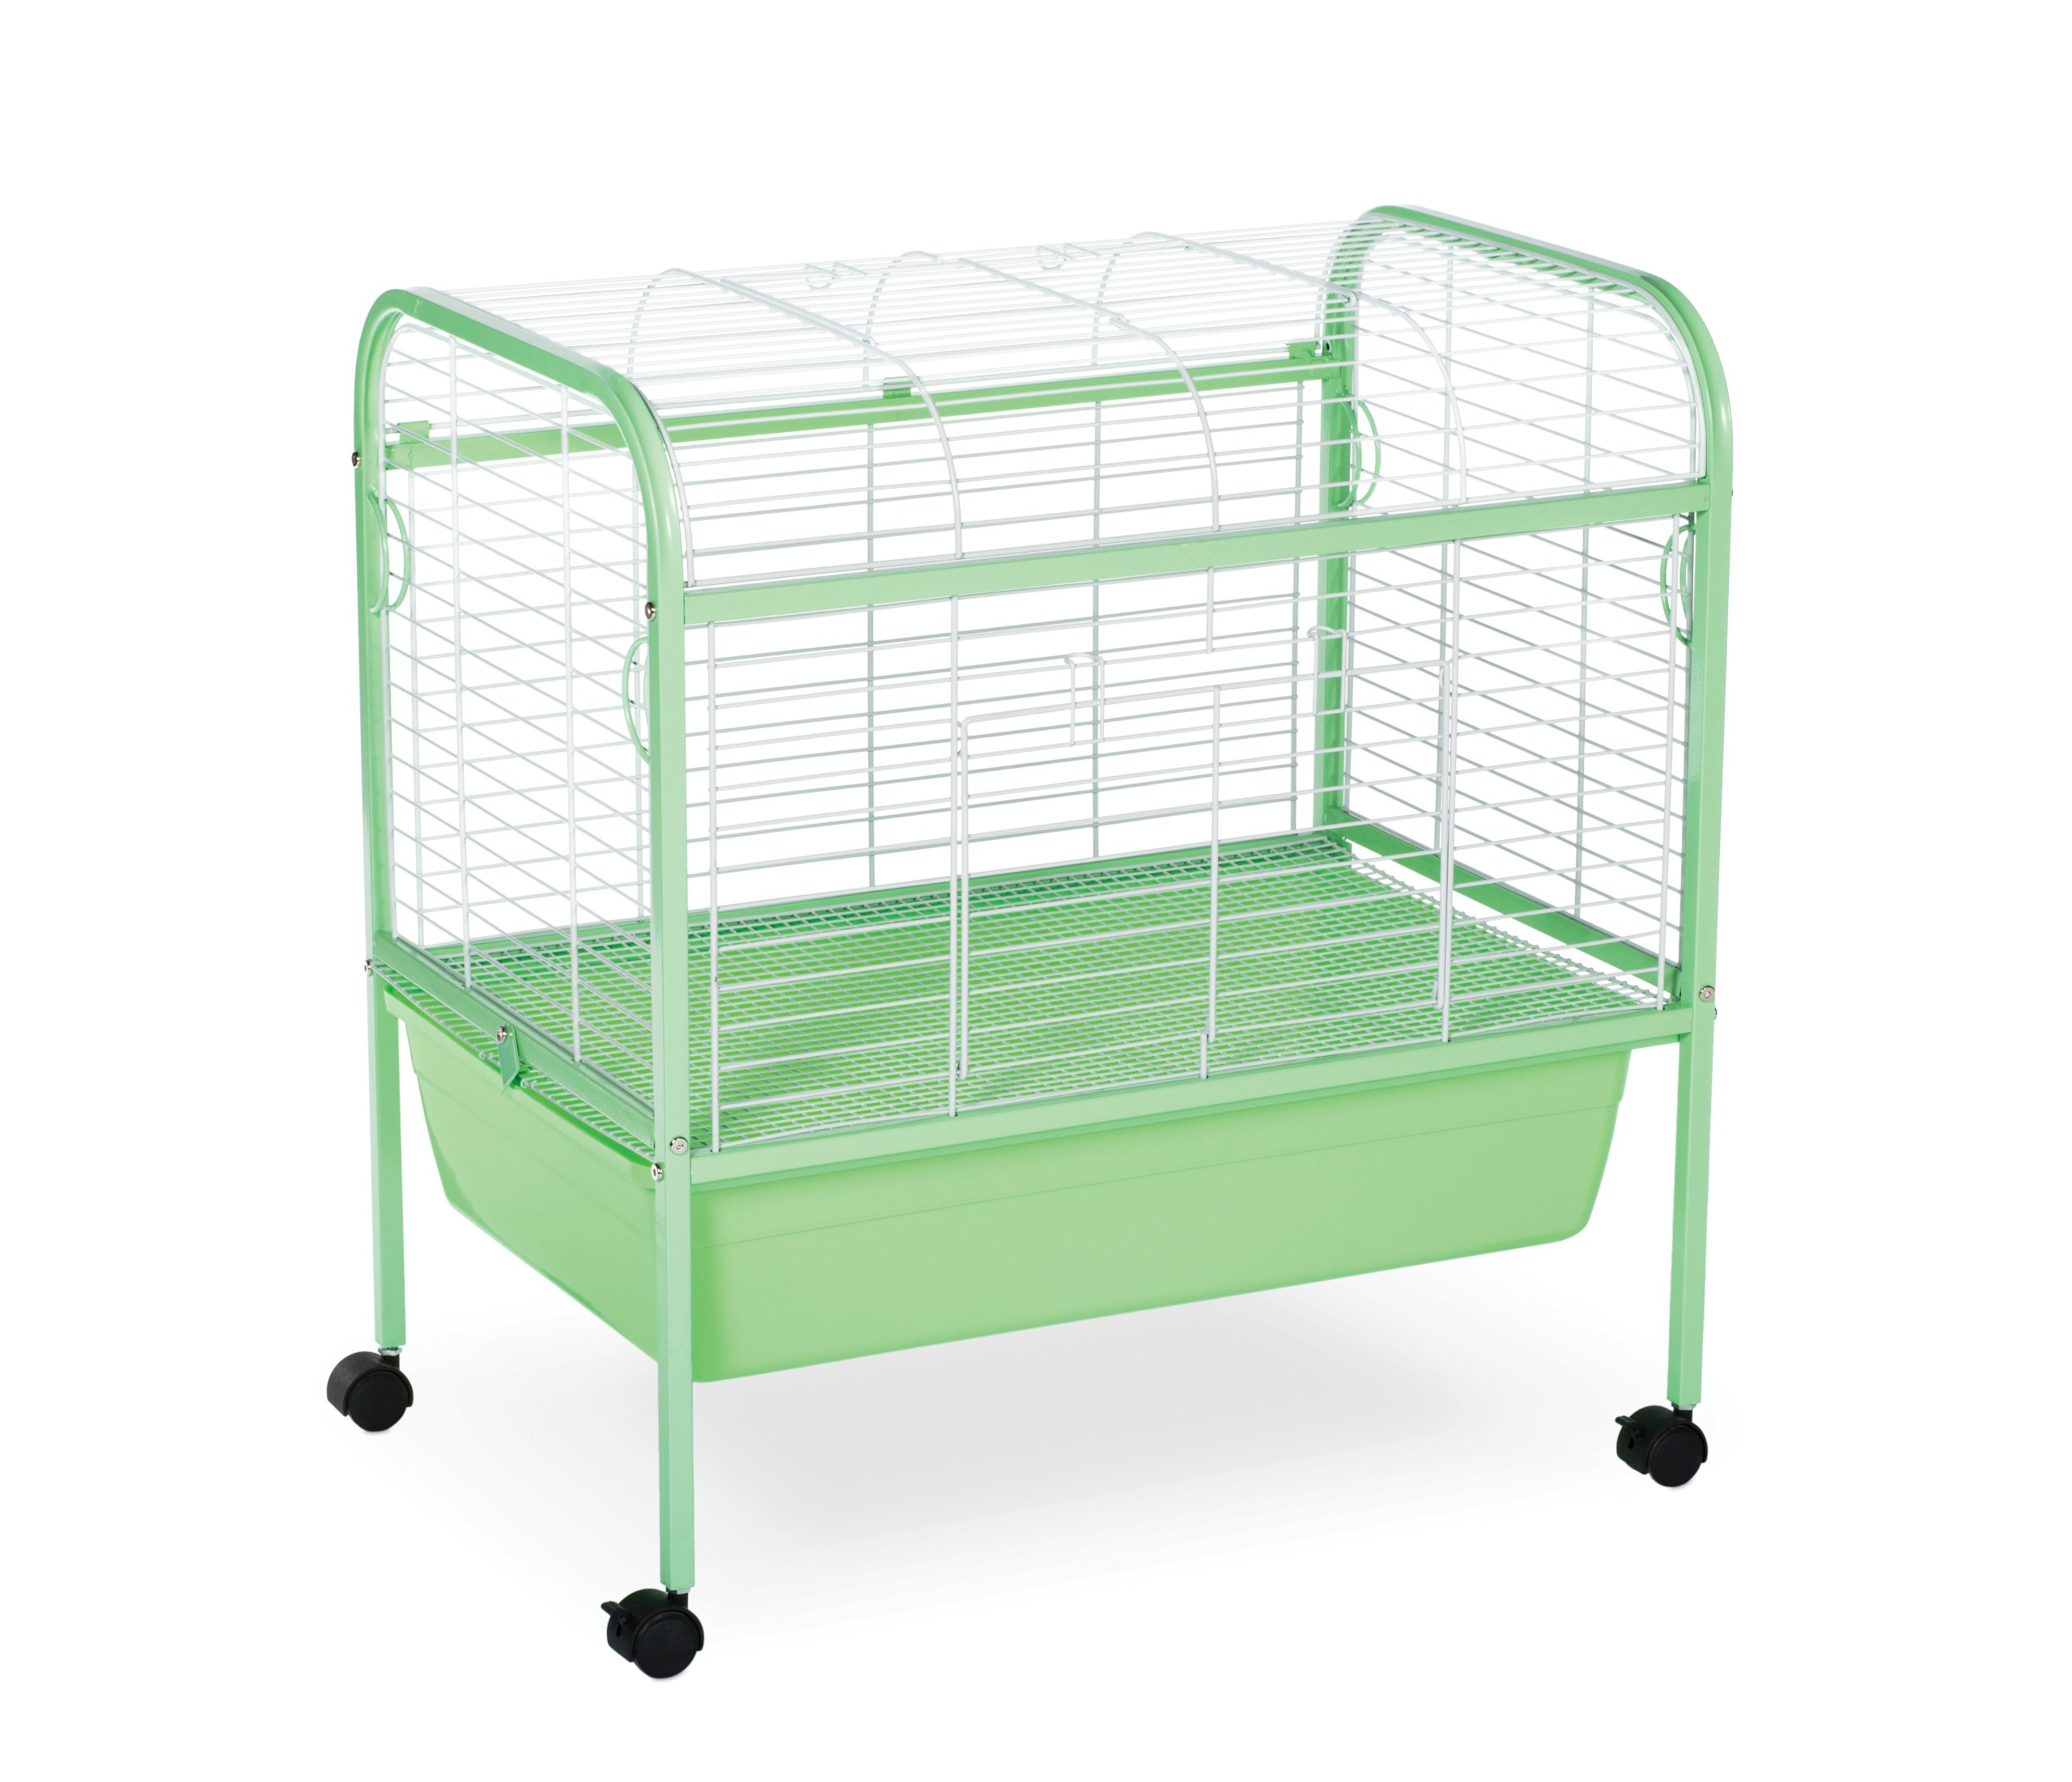 Prevue Pet Products Small Animal Cage with Stand 320 Green and White, 29-Inch by 19-Inch by 31-Inch